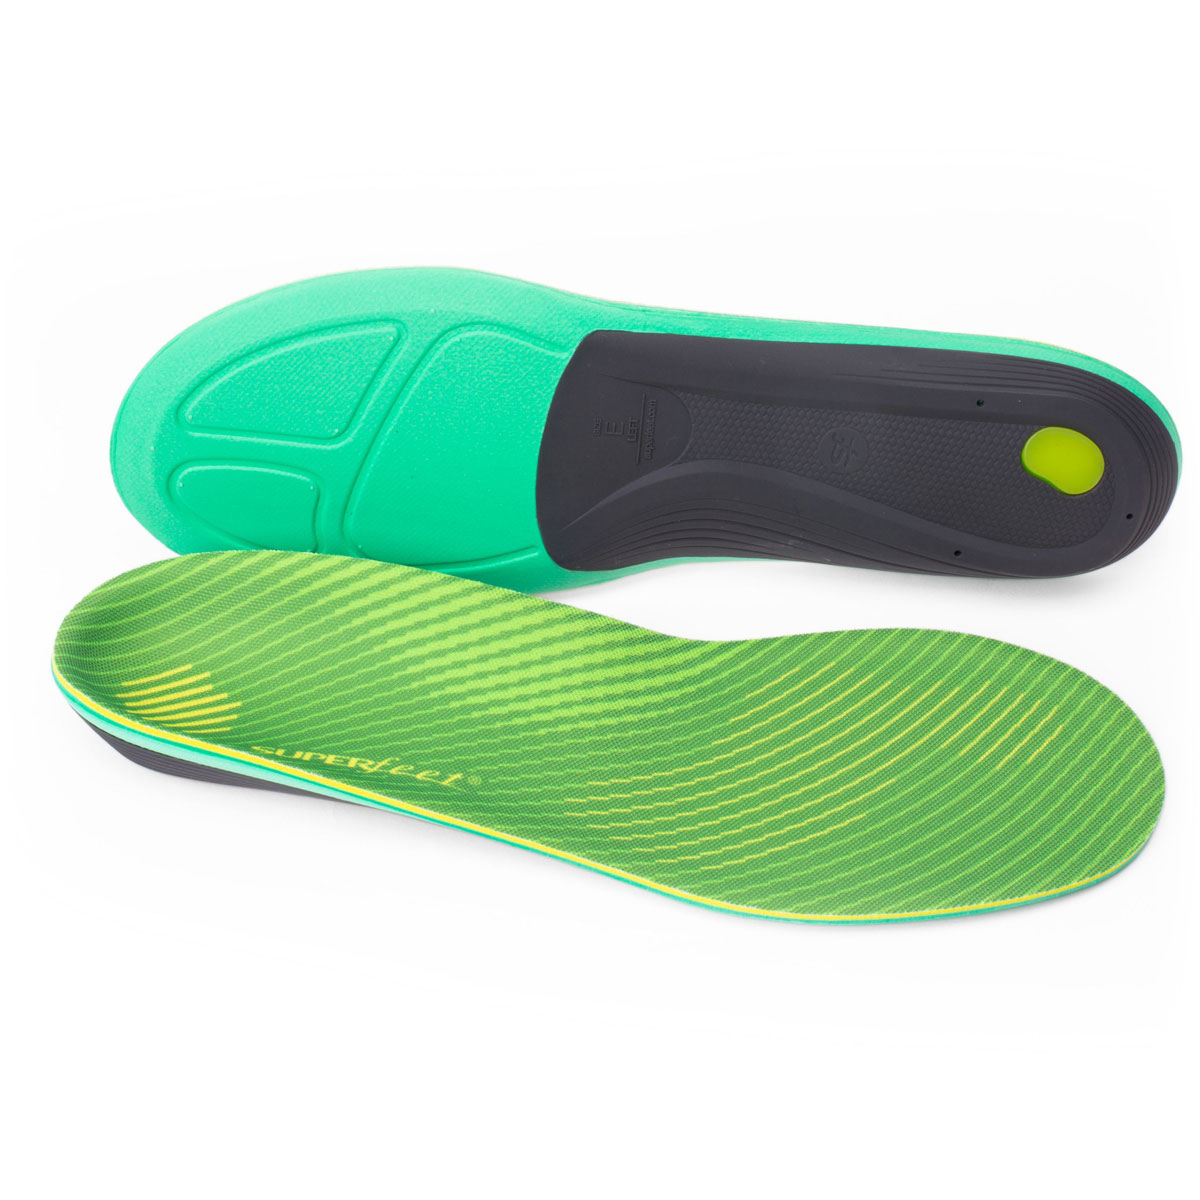 Superfeet RUN Comfort Max - Color: Citron Size: E, Citron, large, image 1